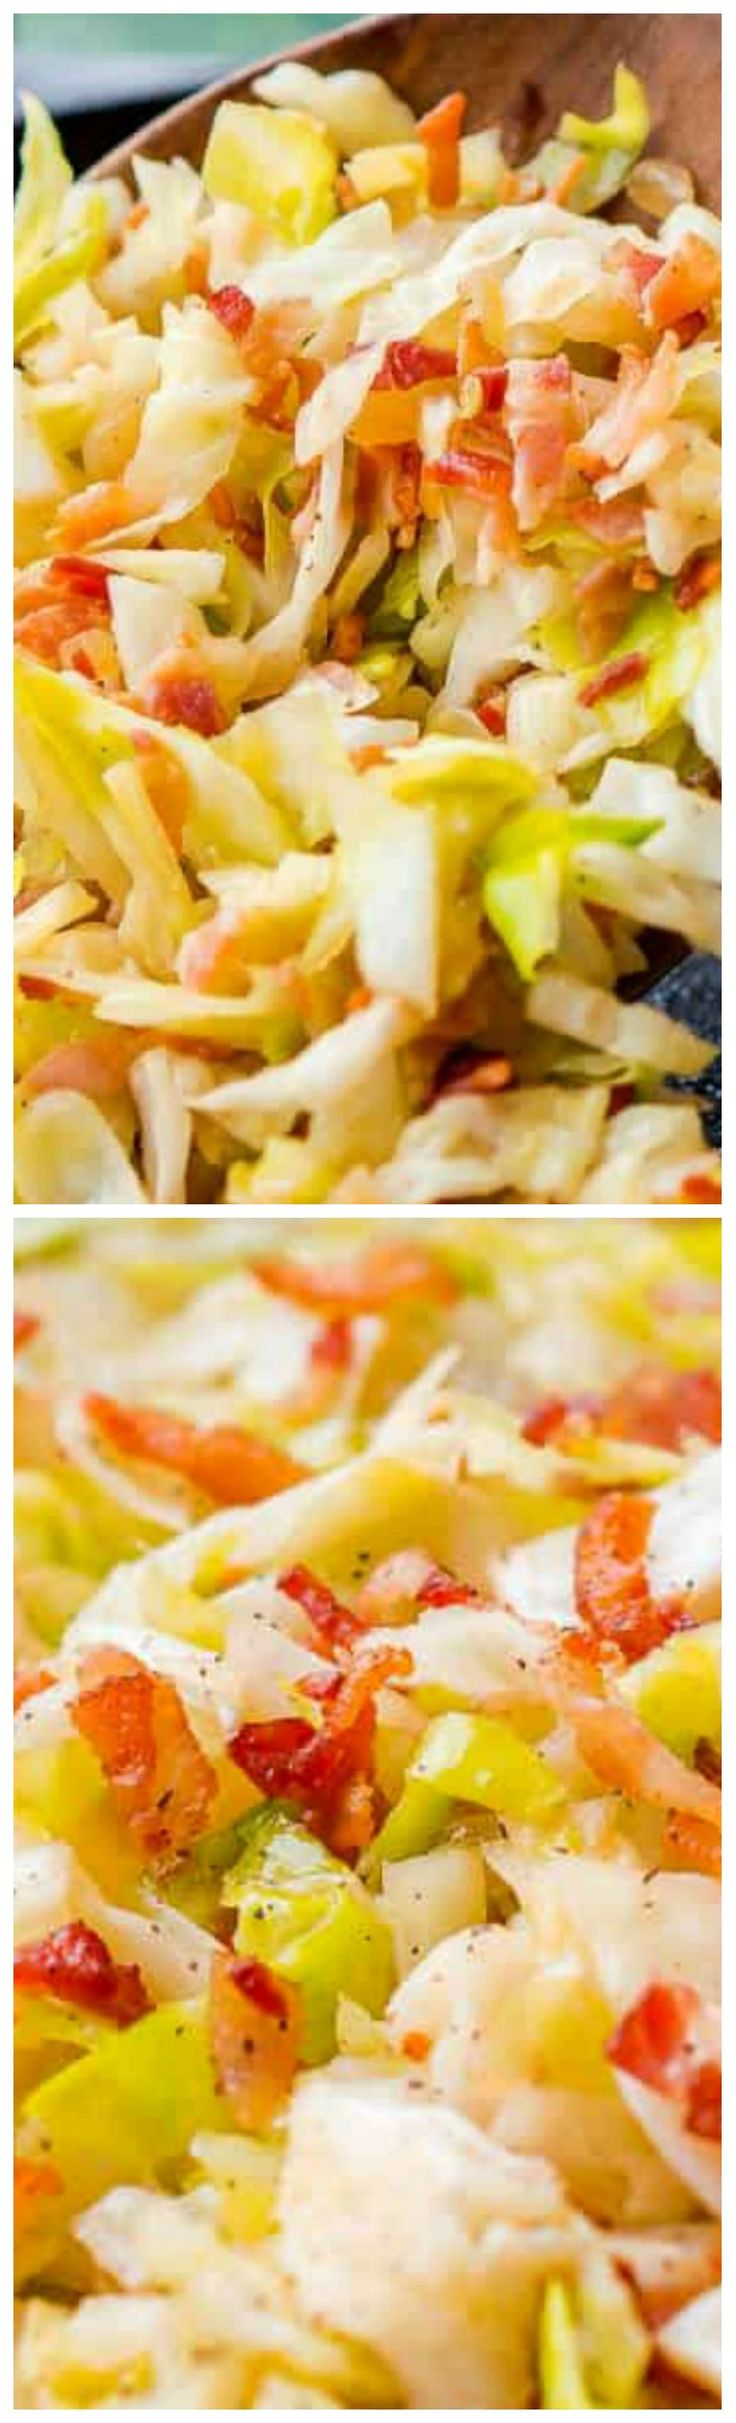 Irish Fried Cabbage and Bacon ~ A simple recipe that's pan fried in bacon grease and loaded up with bacon pieces and onion and seasoned with brown sugar, salt, and pepper.